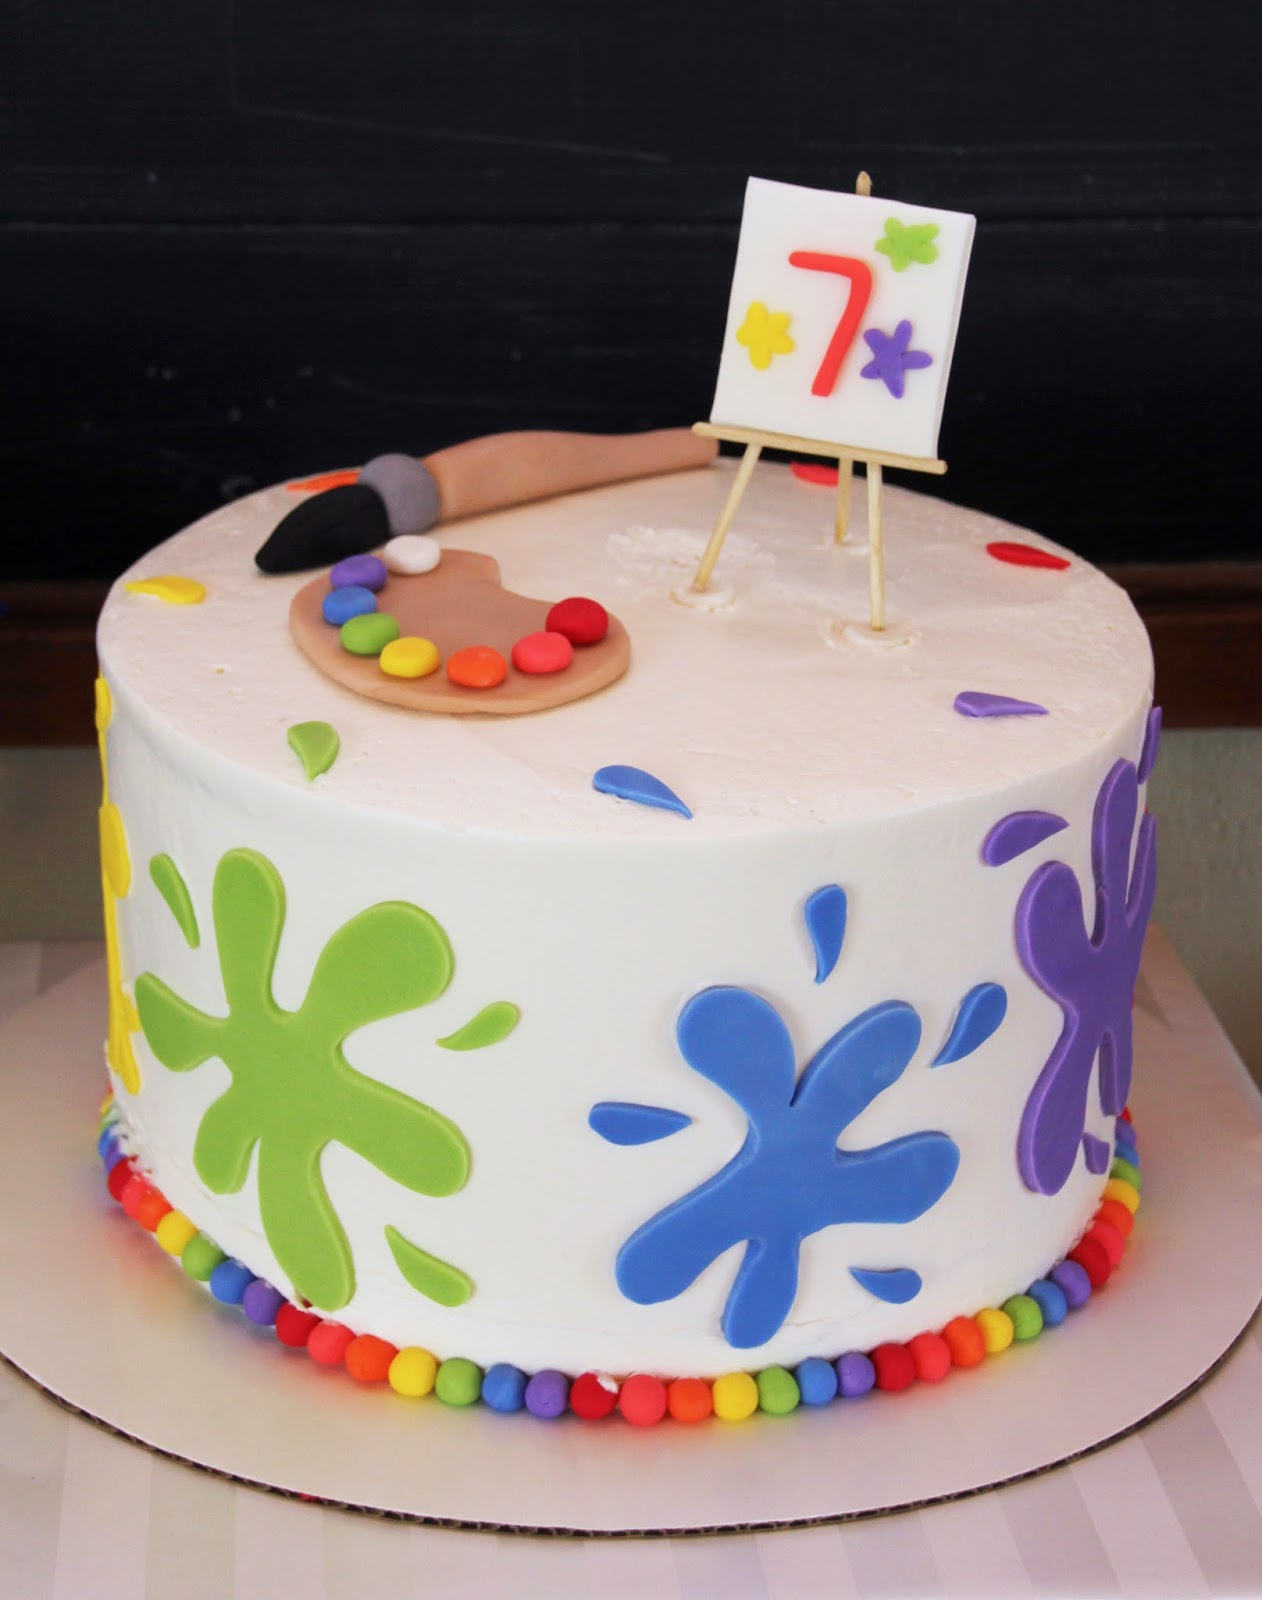 Art Themed Birthday Cake Ideas Image Inspiration of Cake and